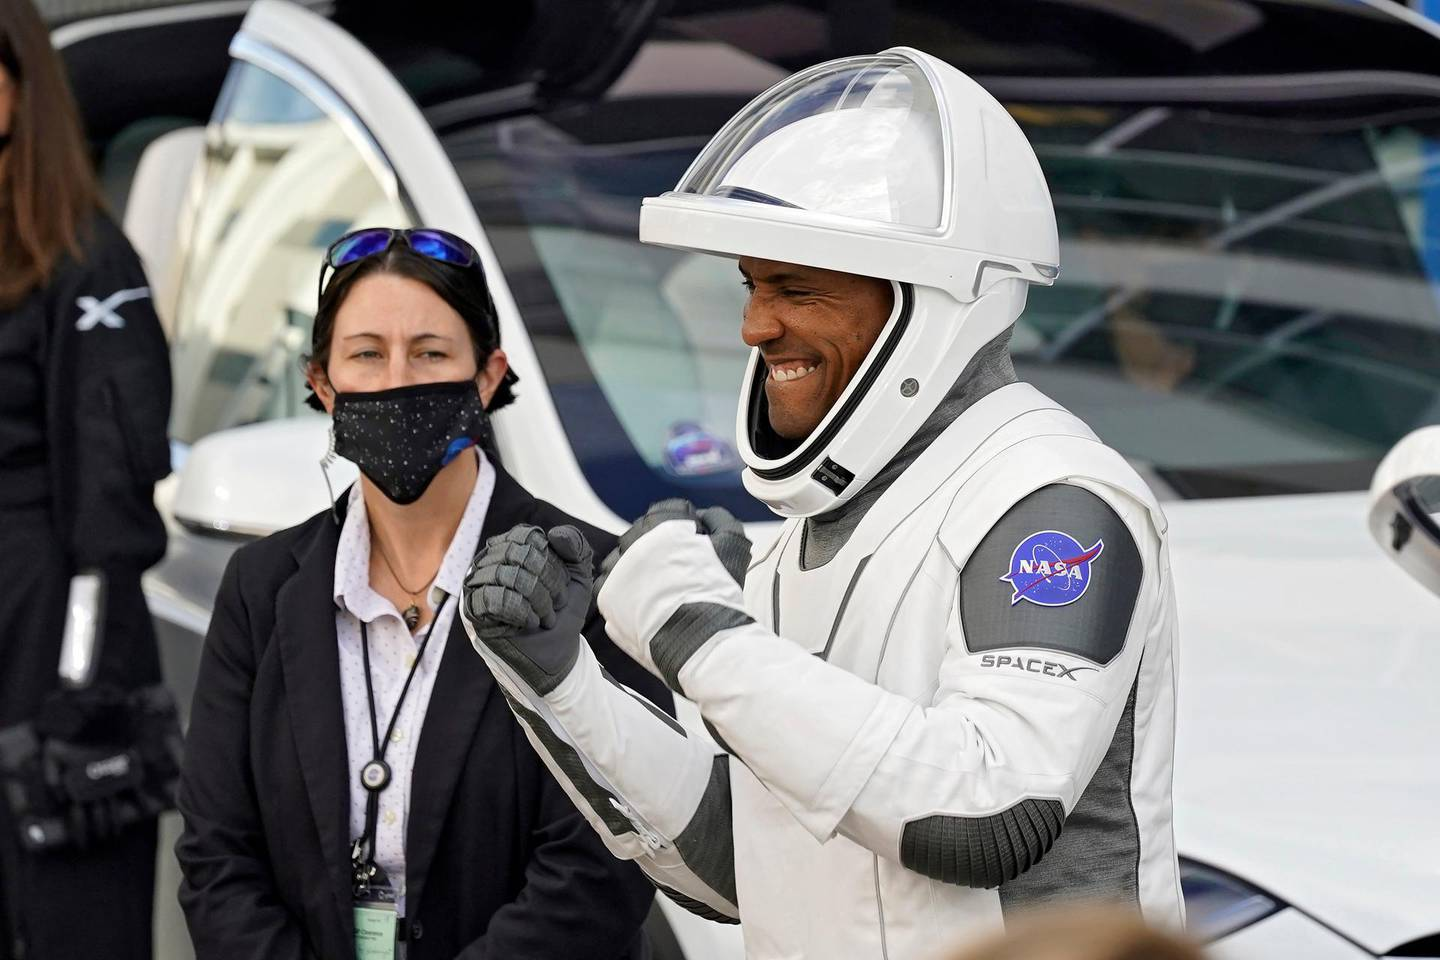 NASA astronaut Victor Glover reacts to family members as leaves the Operations and Checkout Building with fellow crew members for a trip to Launch Pad 39-A and planned liftoff on a SpaceX Falcon 9 rocket with the Crew Dragon capsule on a six-month mission to the International Space Station Sunday, Nov. 15, 2020, at the Kennedy Space Center in Cape Canaveral, Fla. (AP Photo/John Raoux)